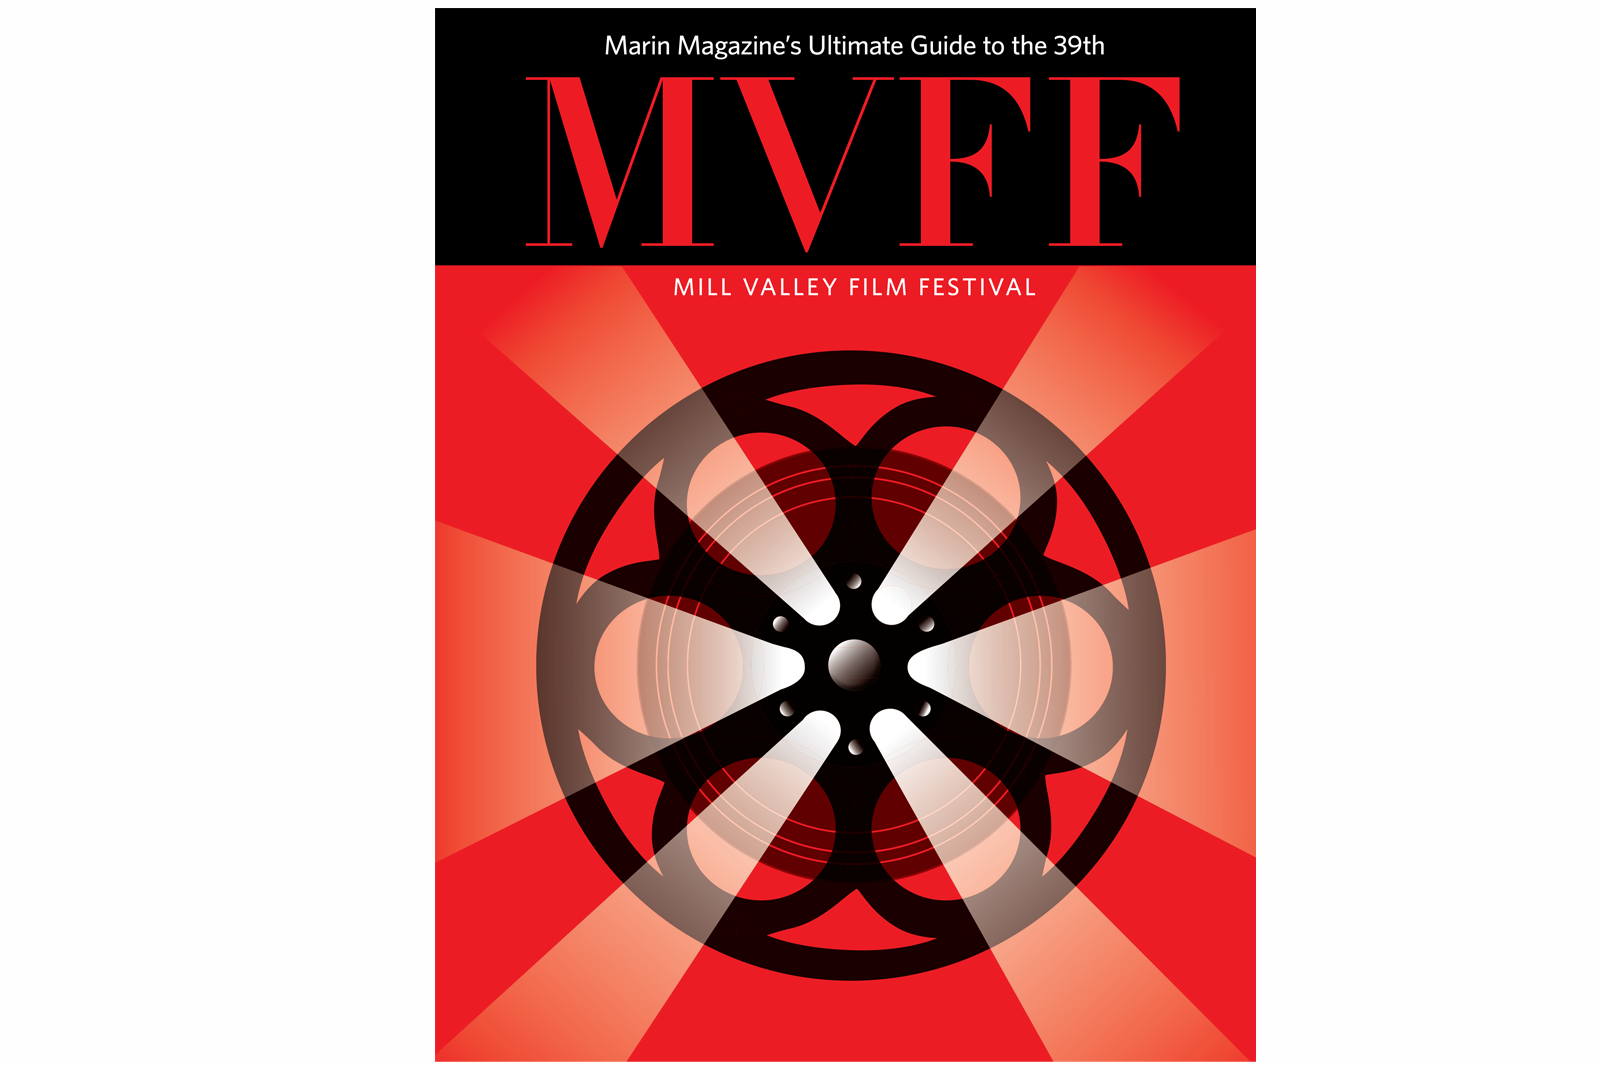 SS&_Featured Work-Image_Base 1_MVFF2015